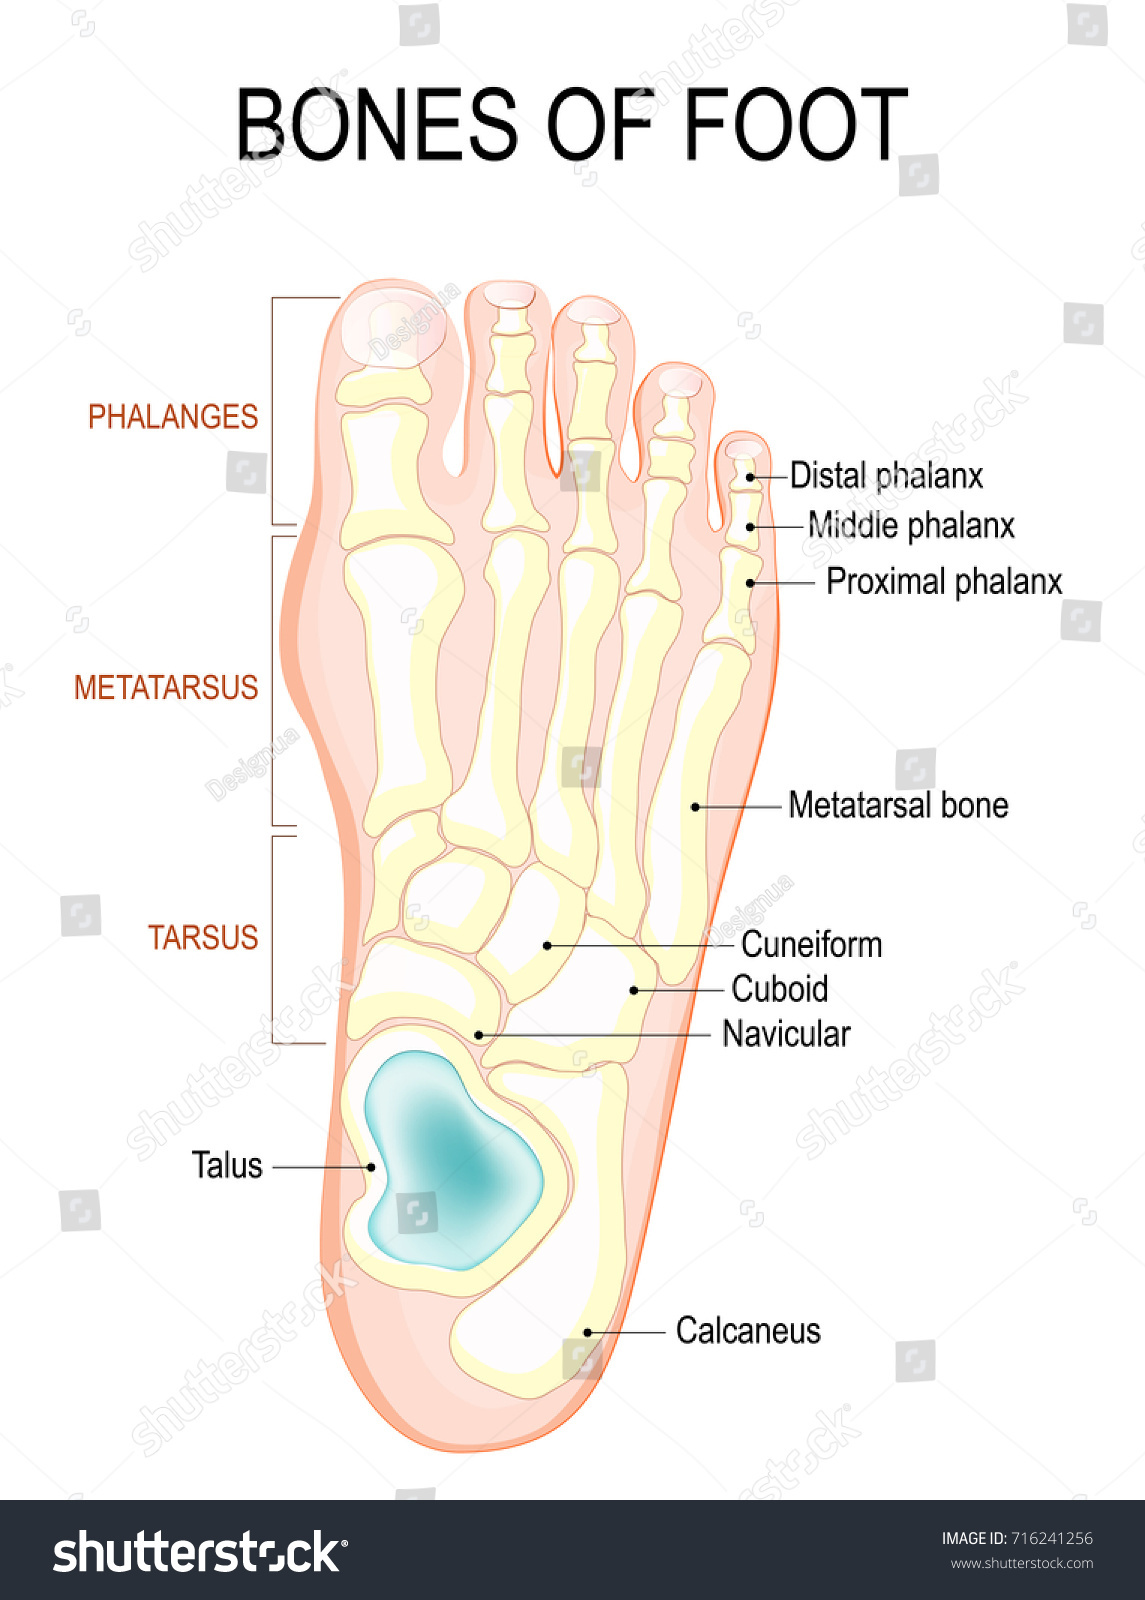 Bones Foot Human Anatomy Diagram Shows Stock Illustration 716241256